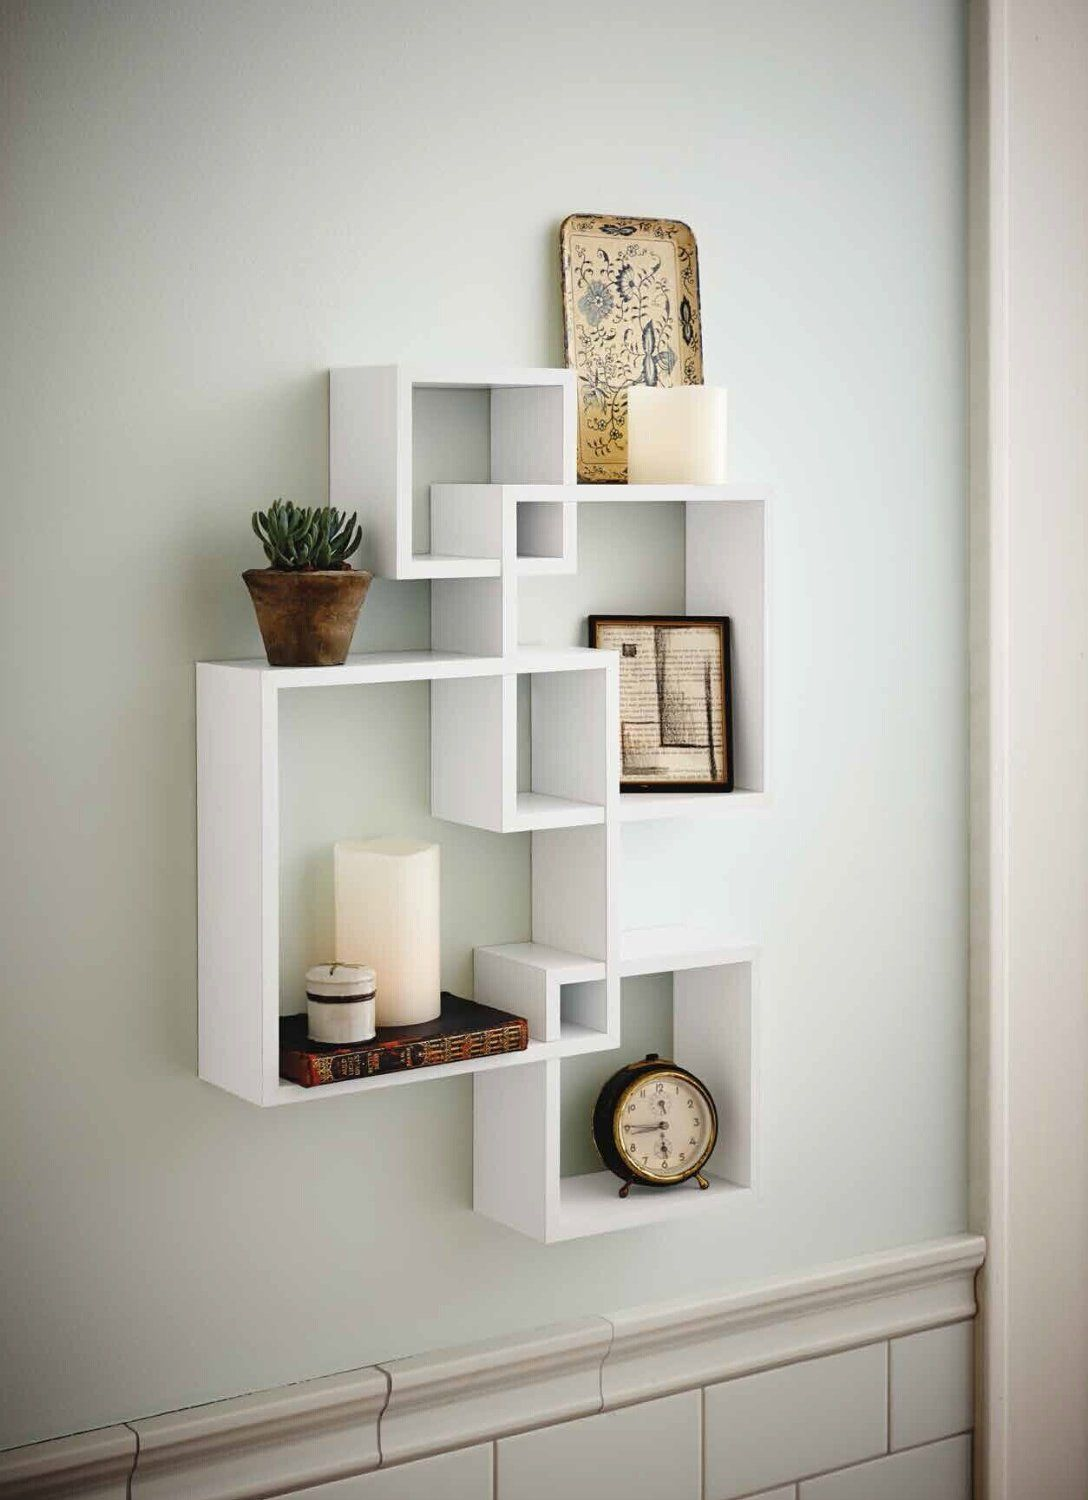 generic intersecting squares wall shelf decorative storage cube floating display overlapping countertop ideas over the toilet ikea coat rack black desktop computer long box vanity